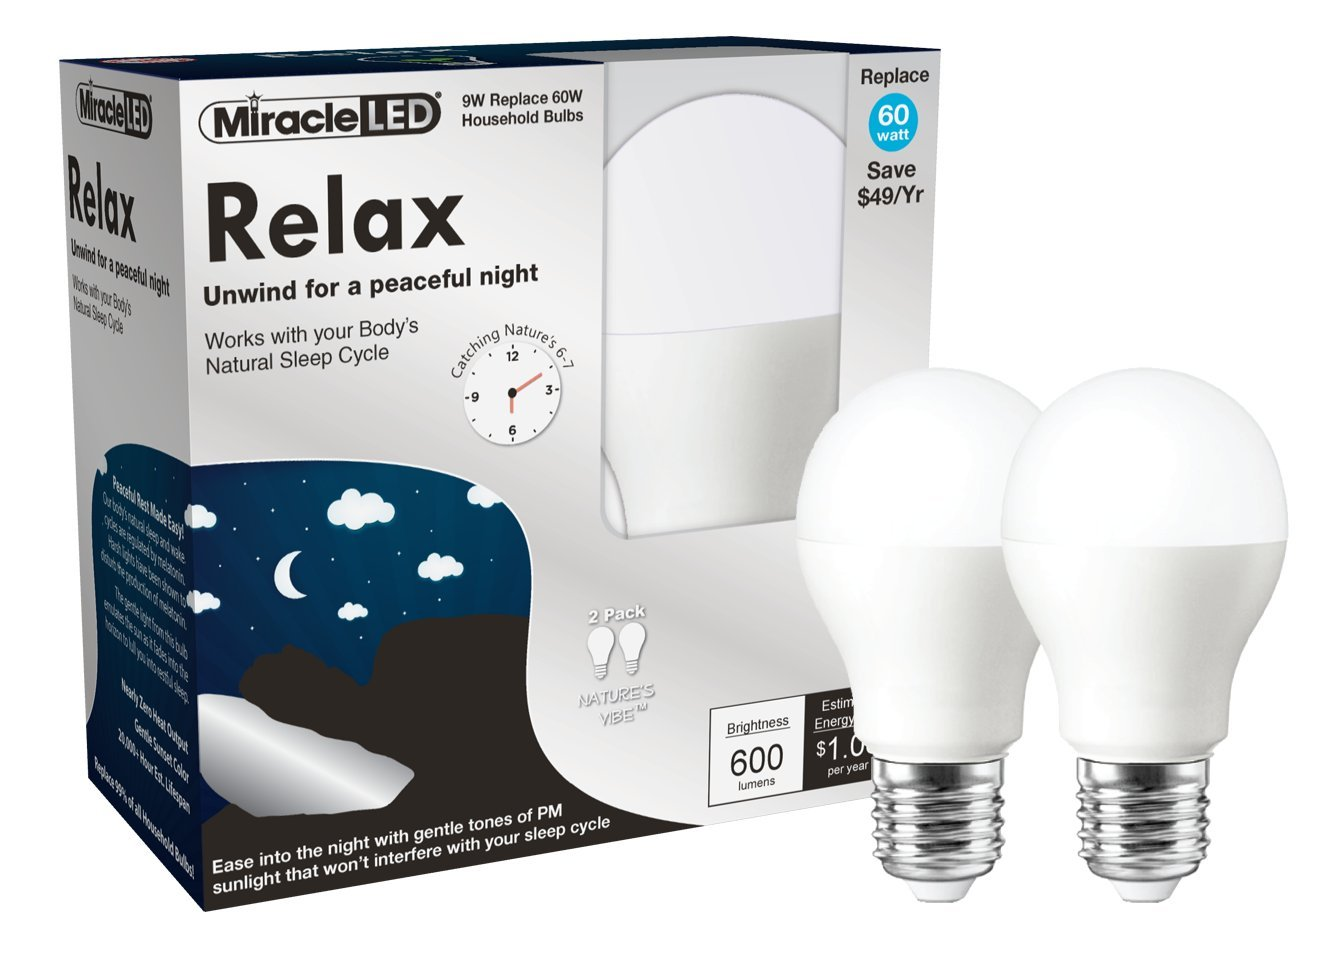 Miracle LED Nature's Vibe Relax Sweet Dreams Nighttime LED Light Bulb